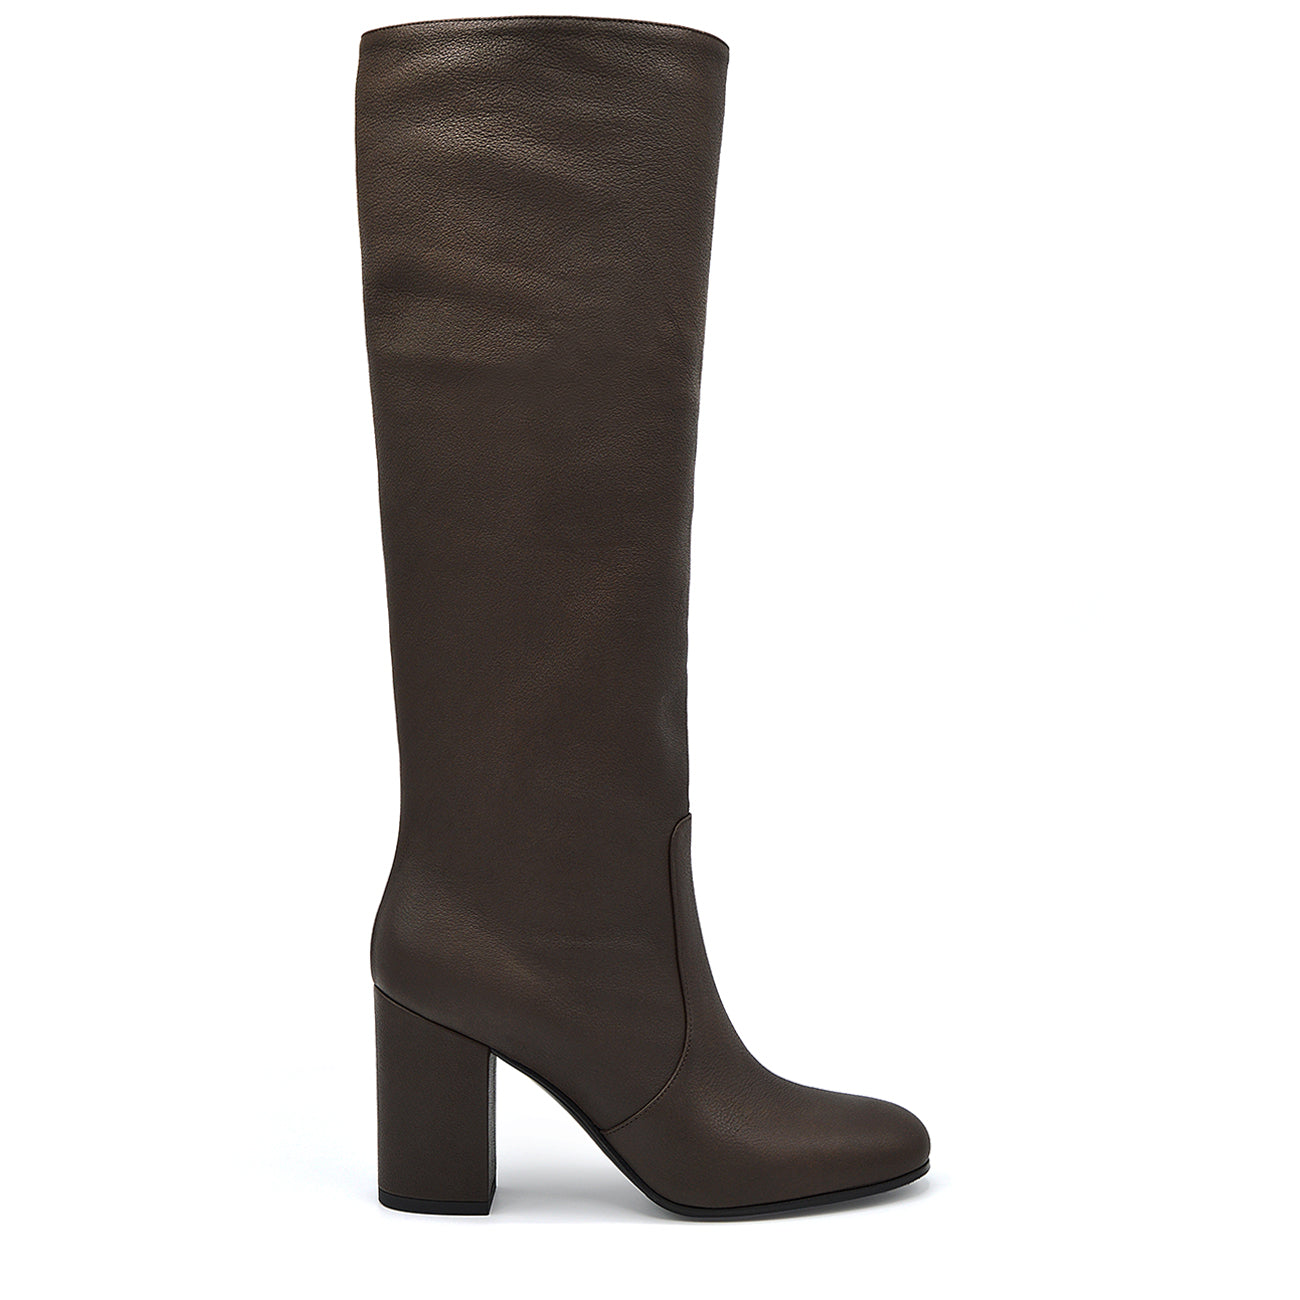 Nikyta. <br> Espresso brown calfskin knee-high boots